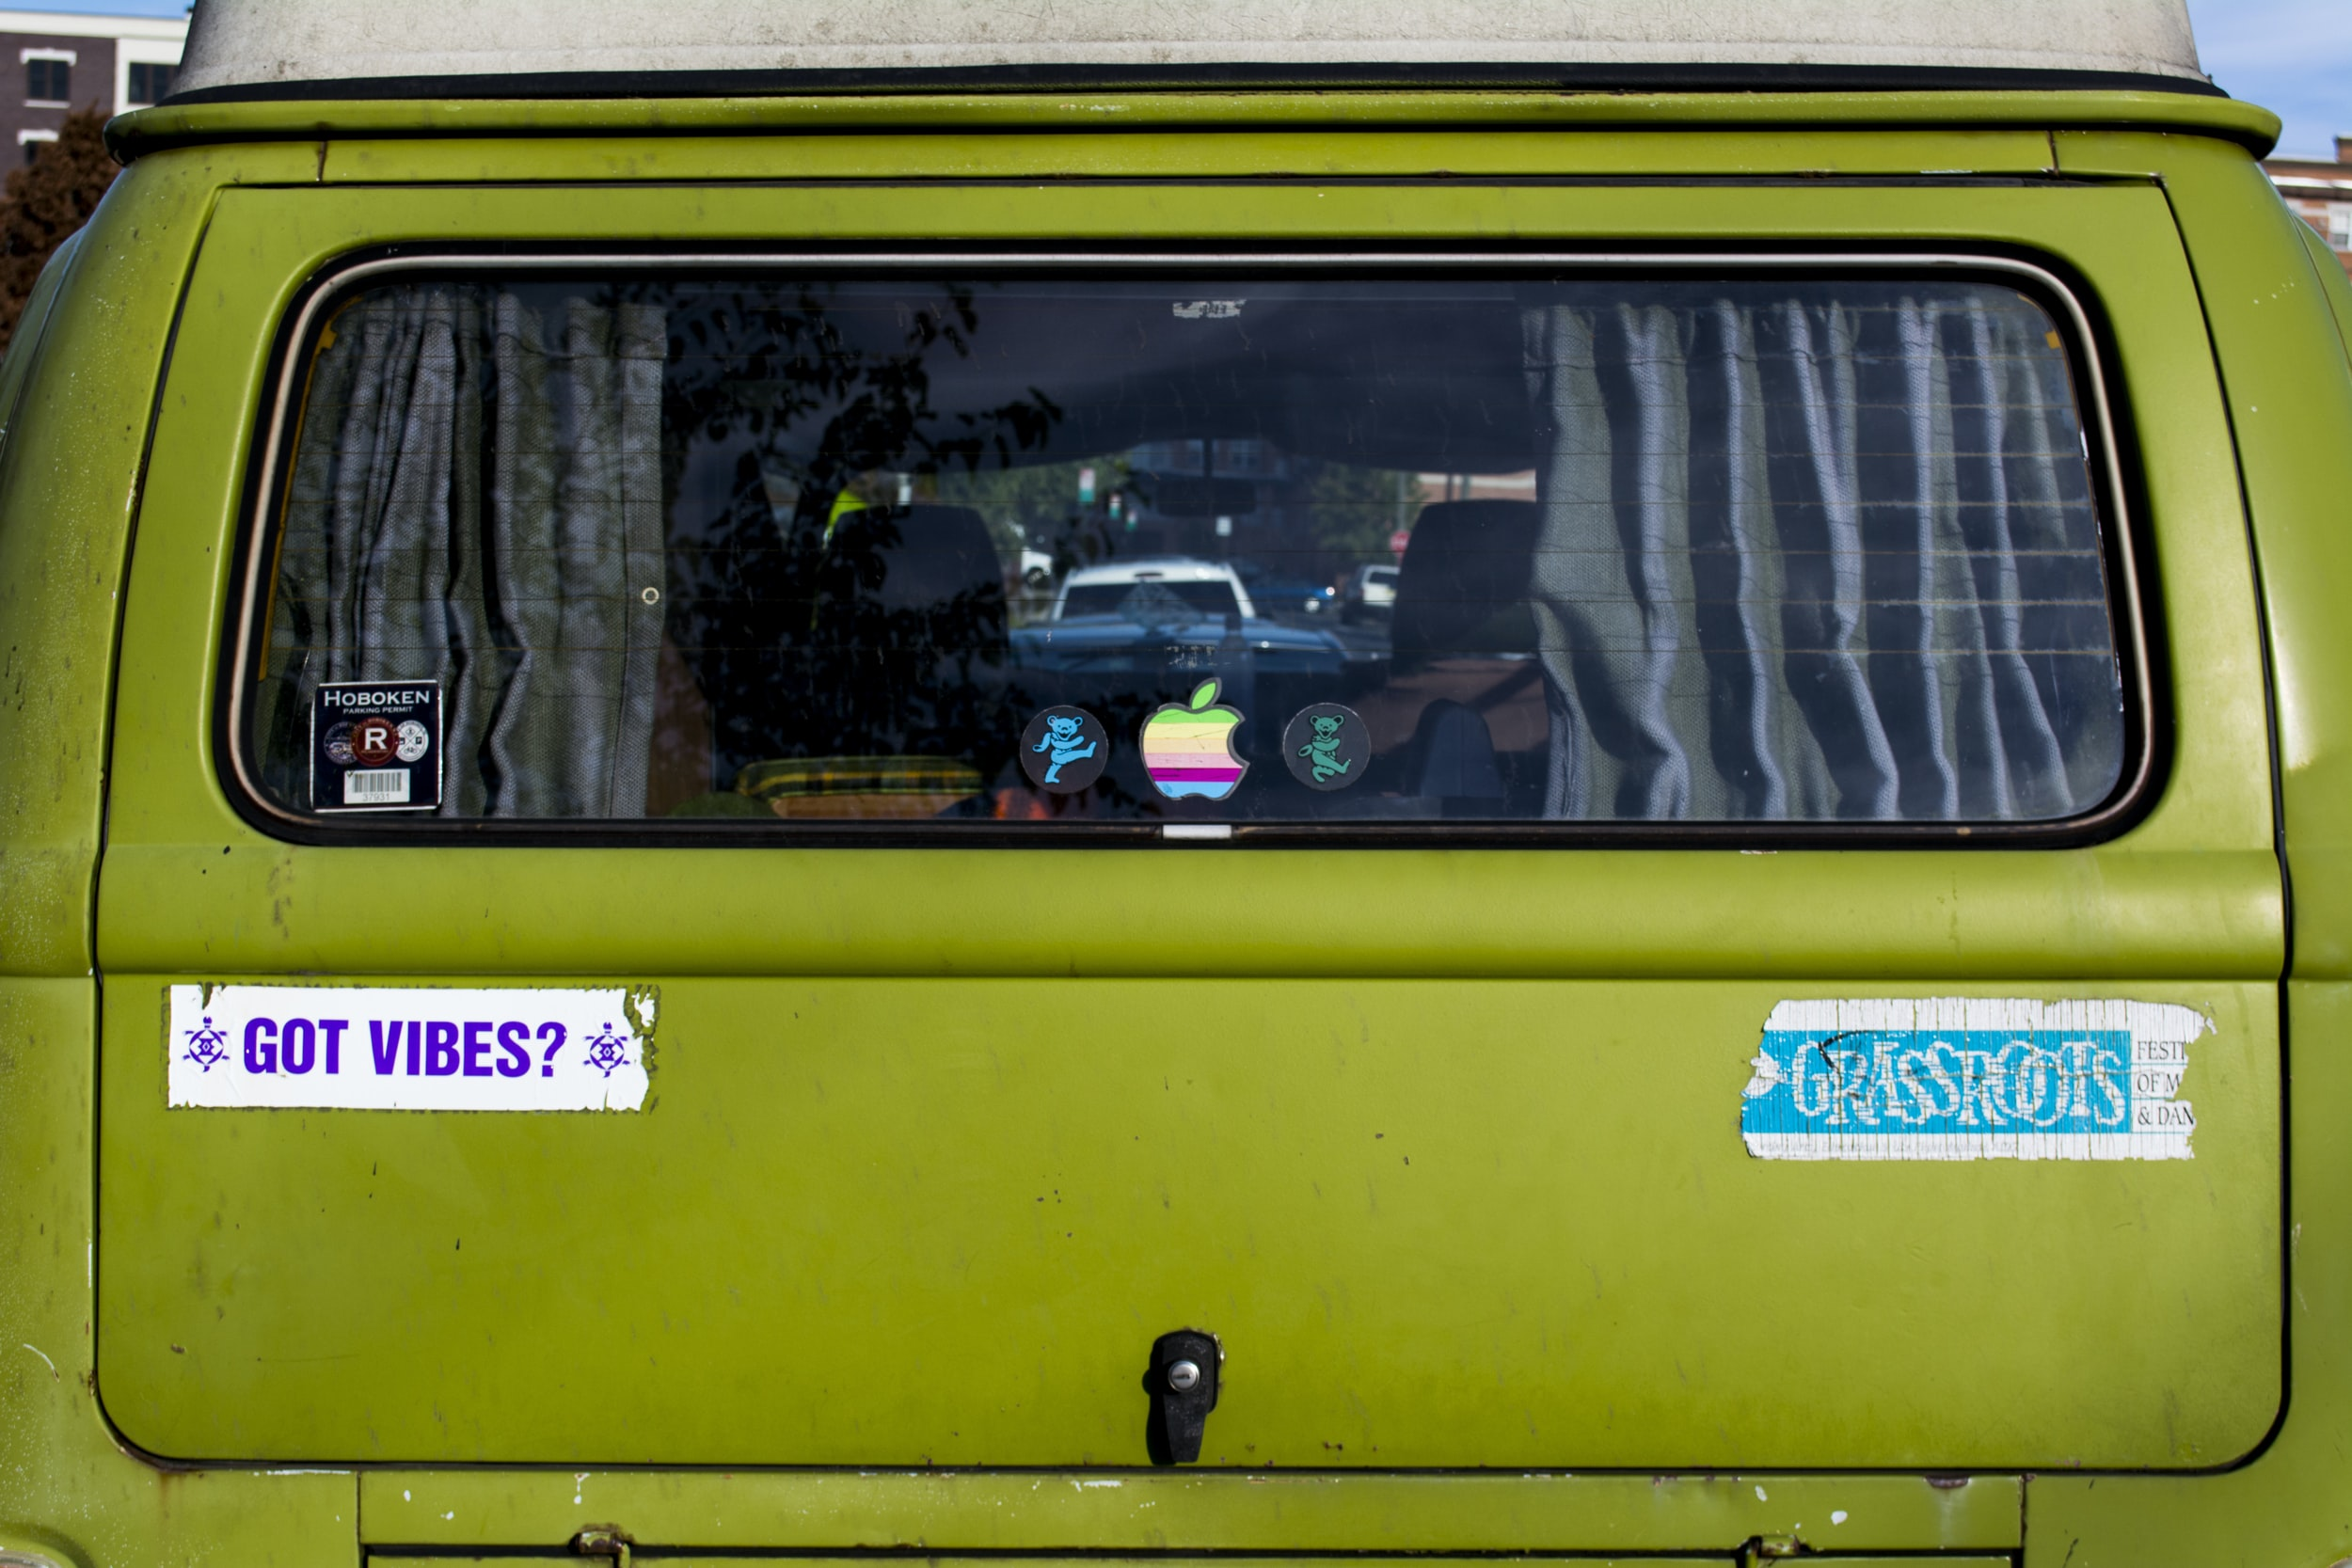 Colorful stickers on the rear window of a green Volkswagen van